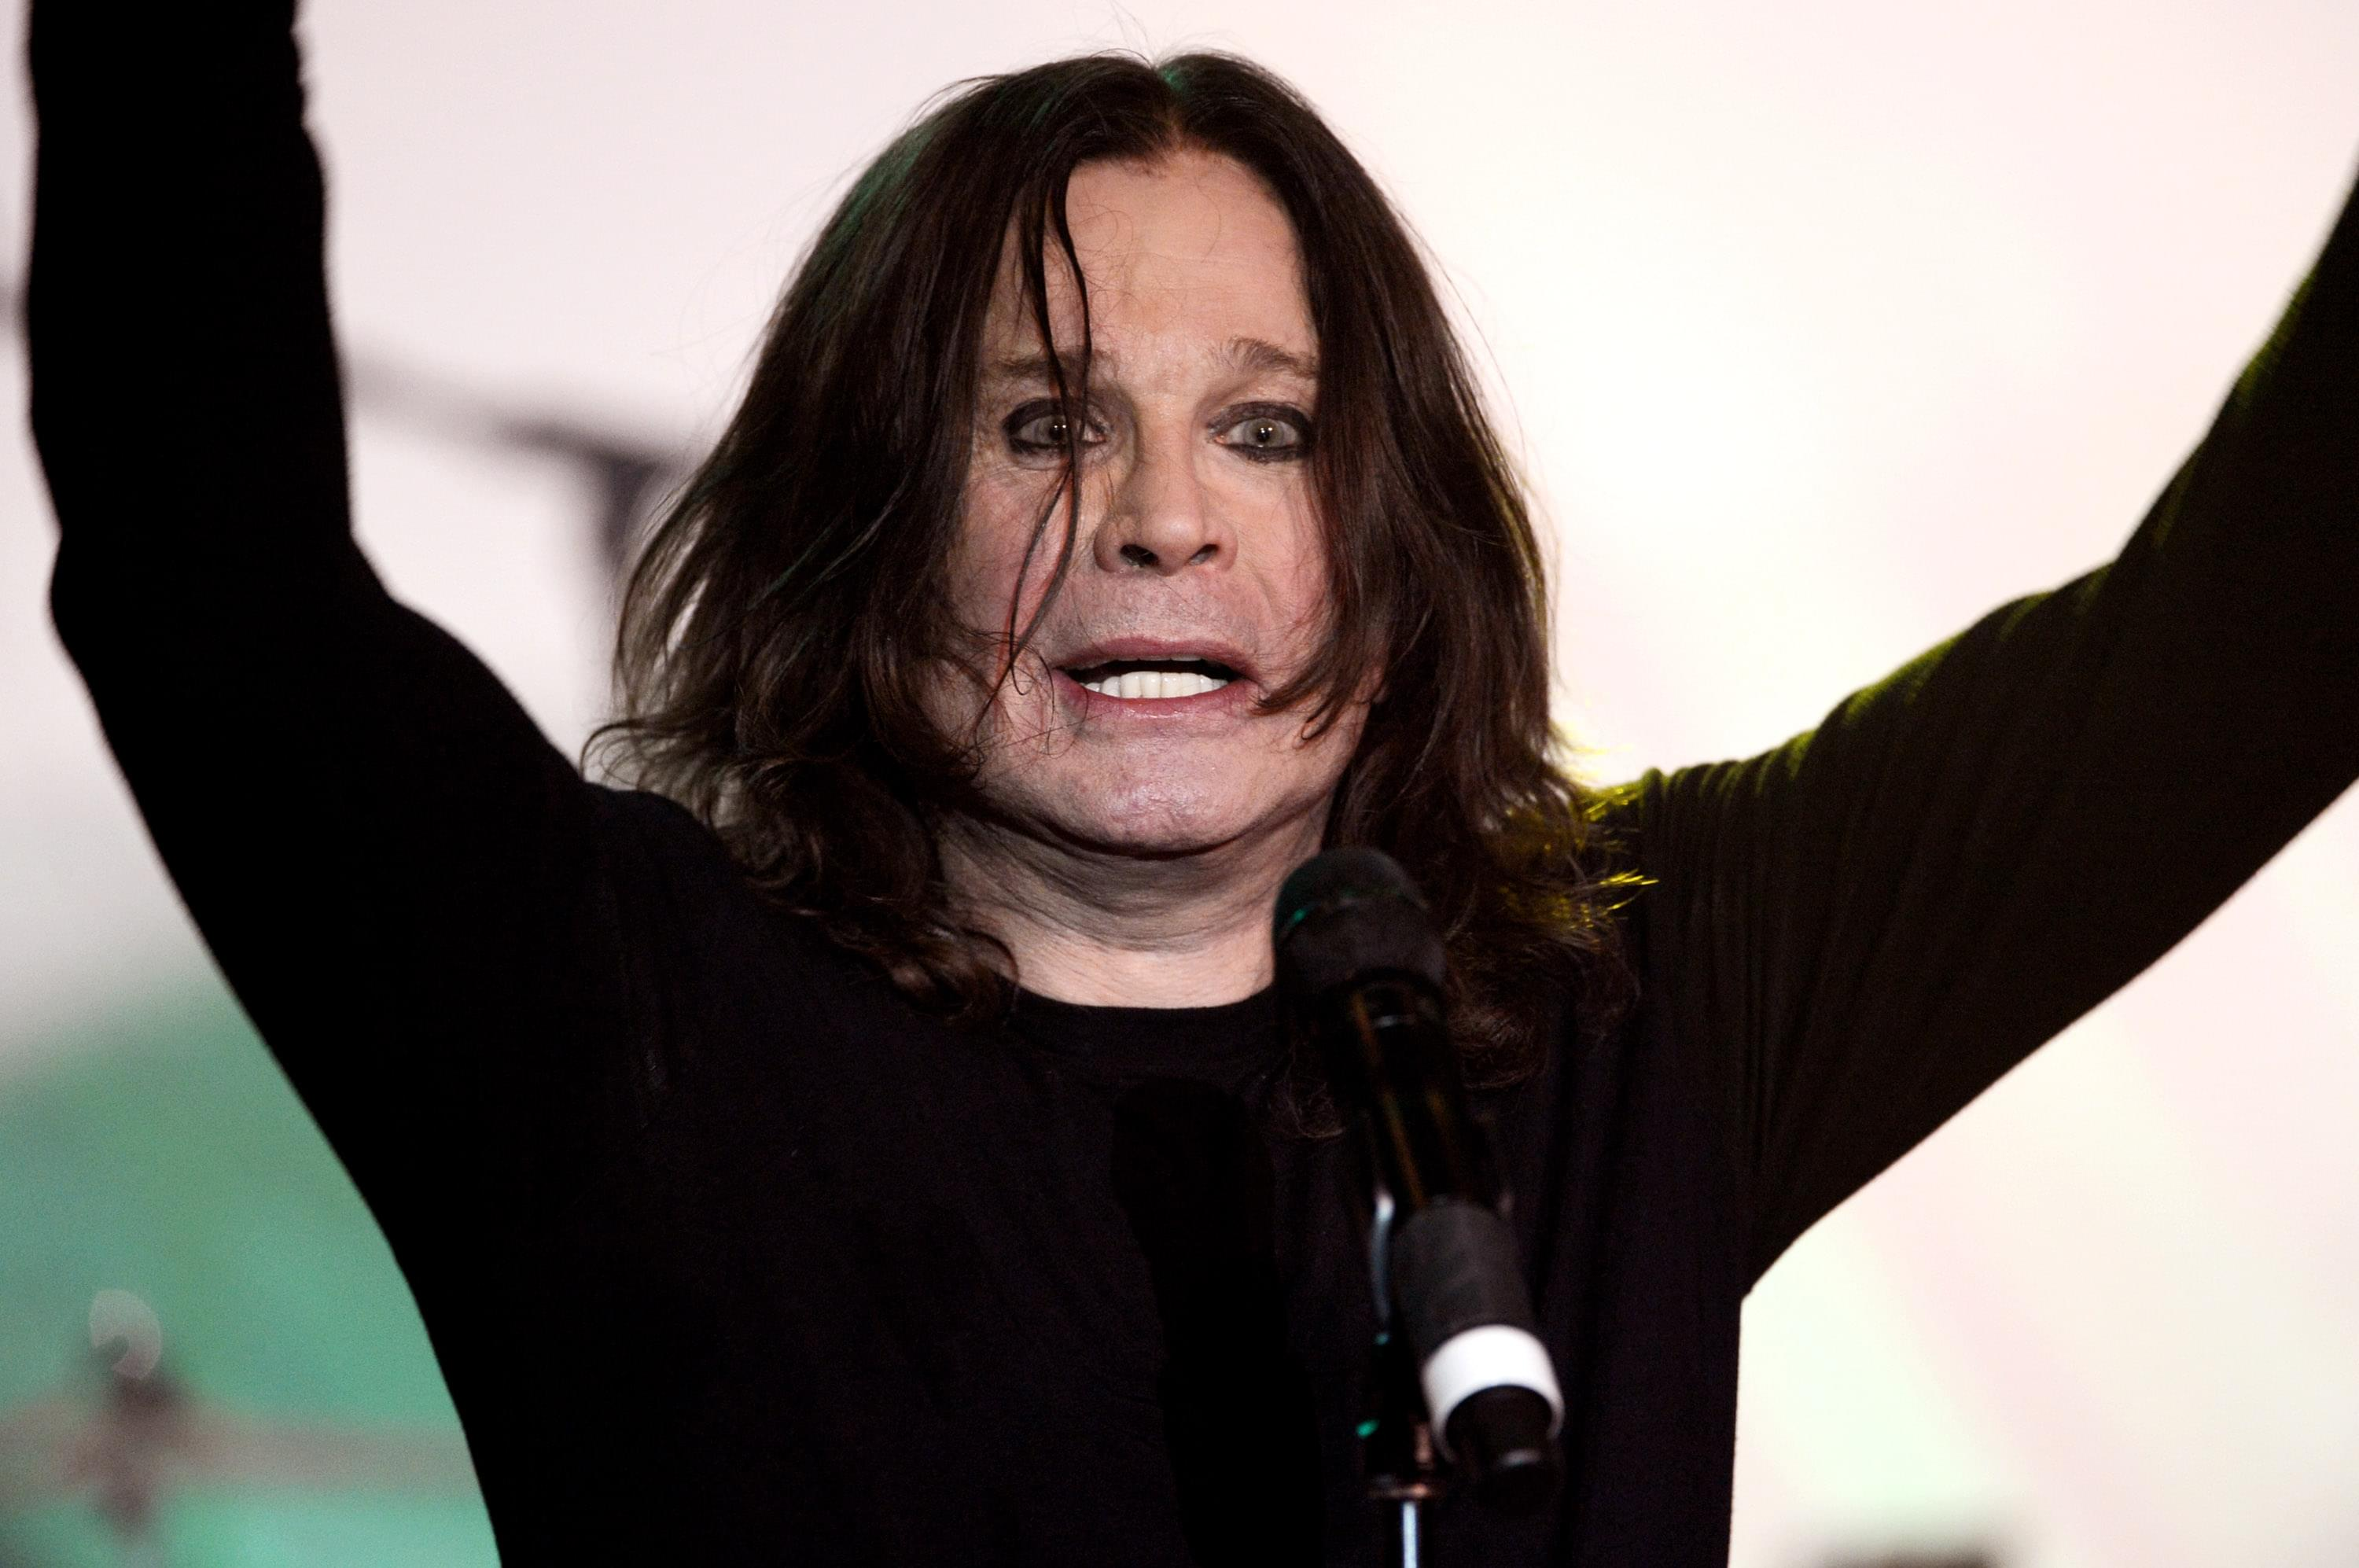 Ozzy Osbourne Cancels 2020 North American Tour Dates